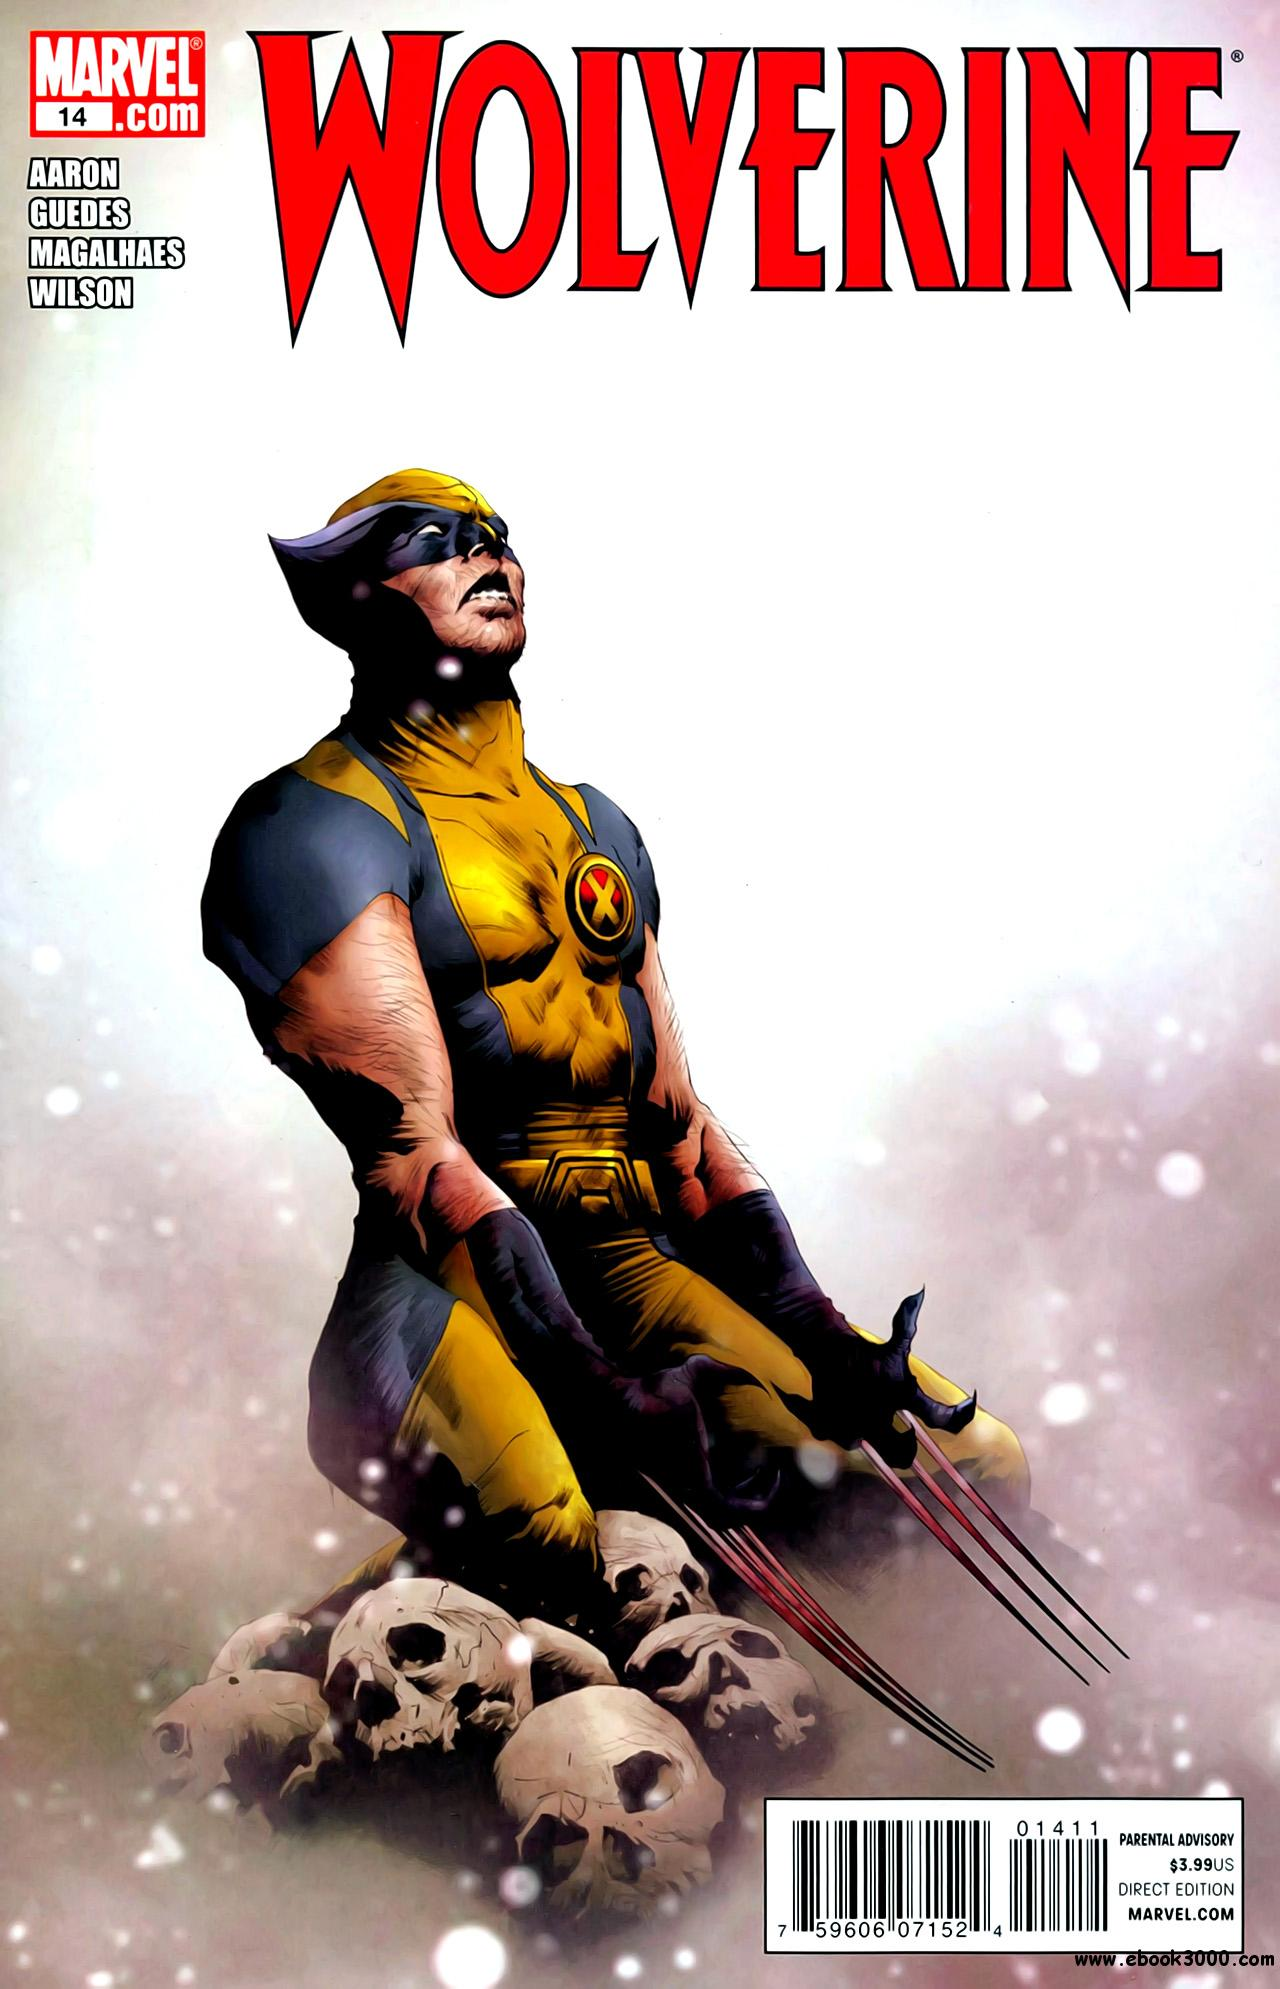 Wolverine #14 (2011) free download